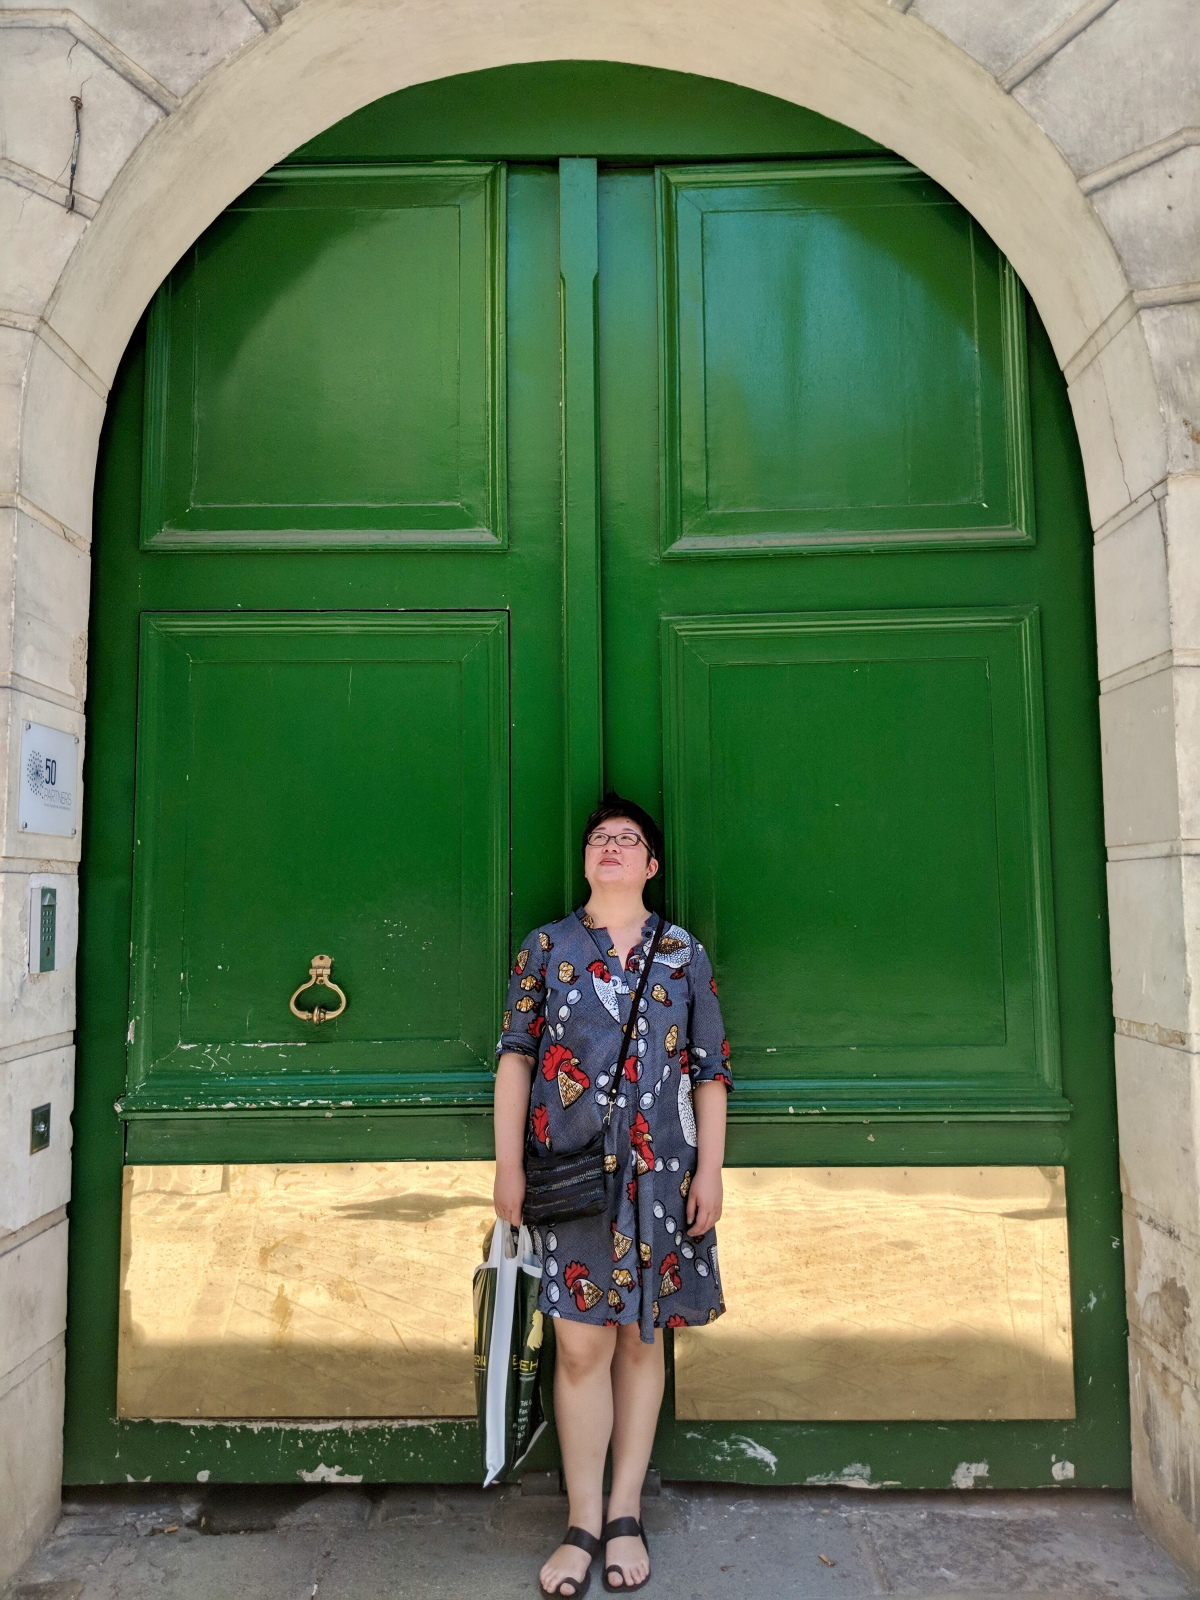 Lisa in front of an arched green door, Paris